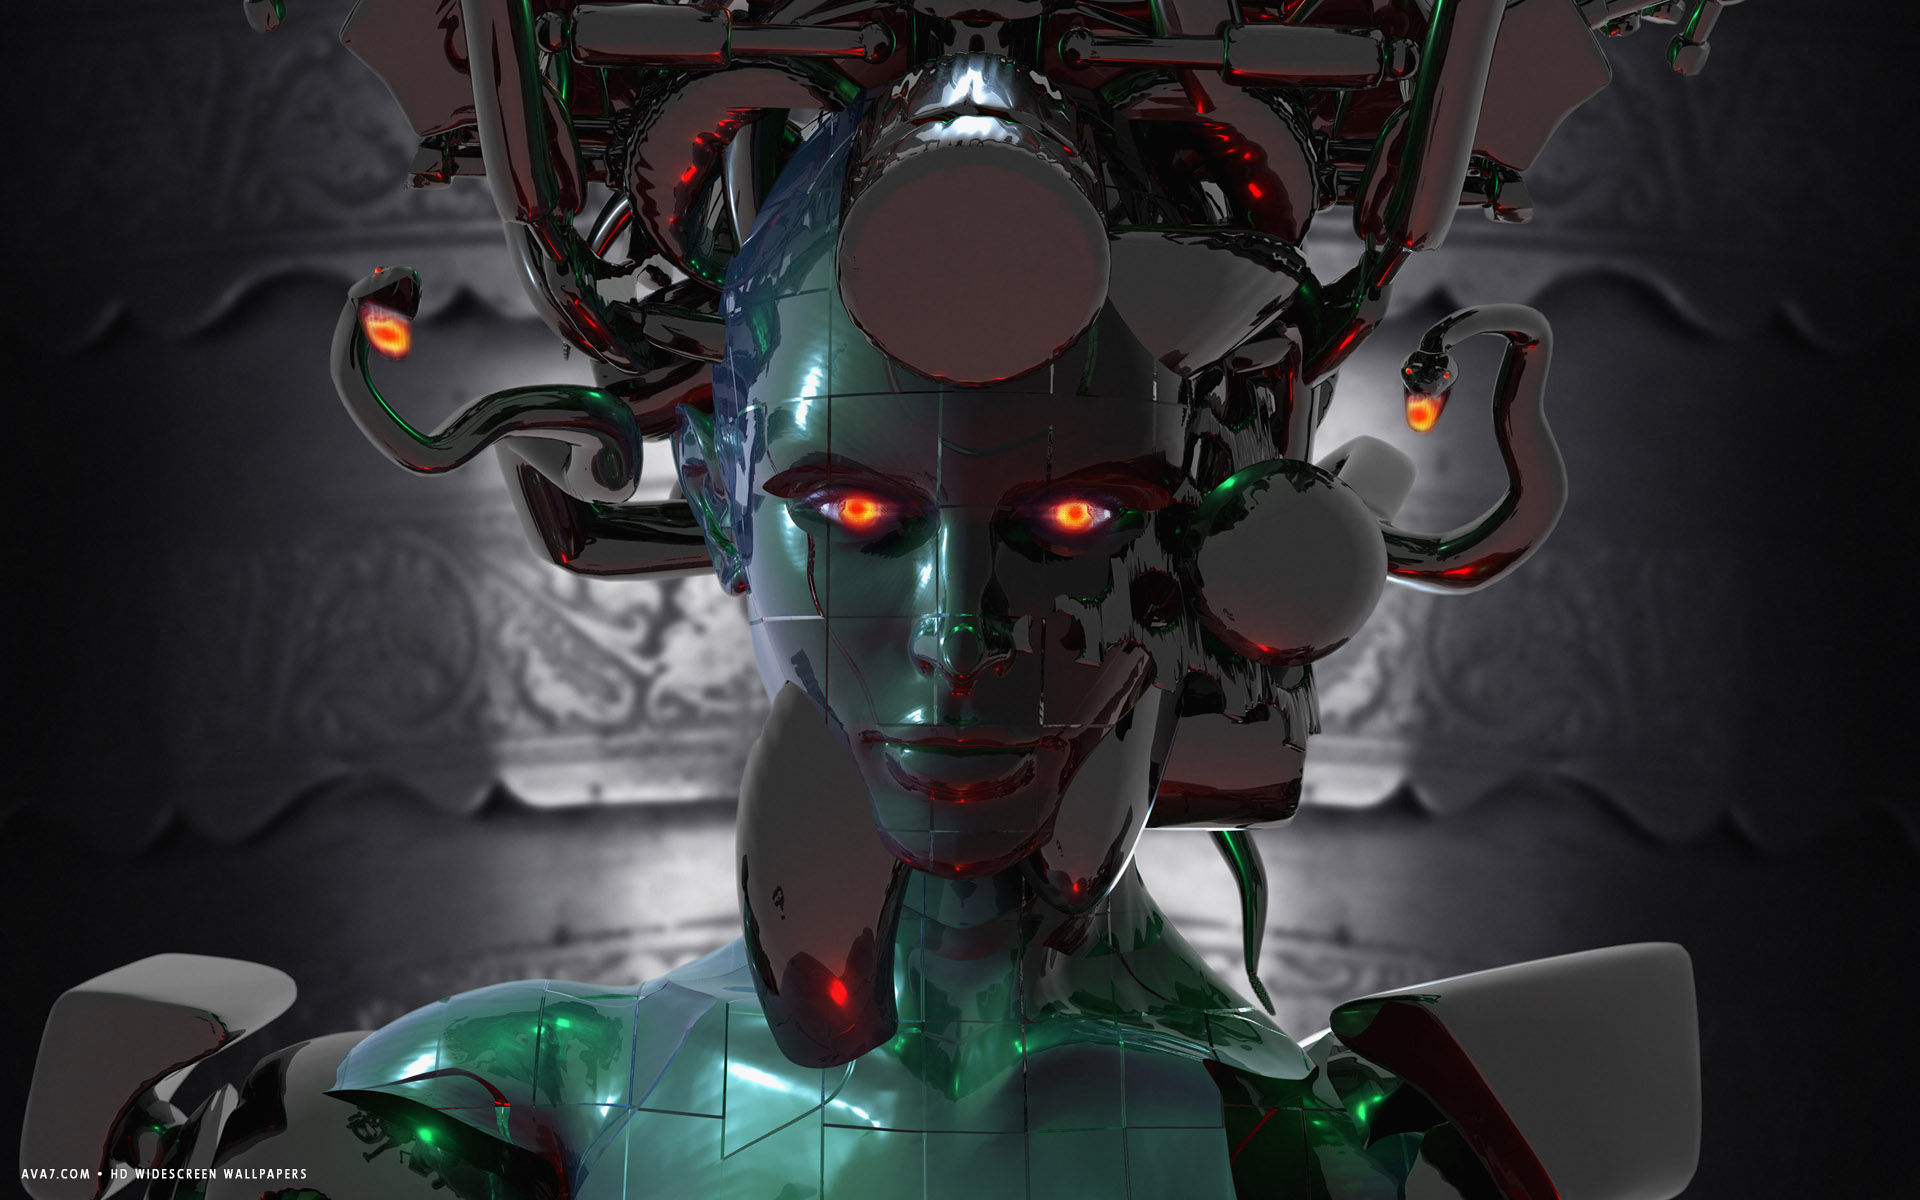 3d cyborg robot alien girl red eyes hd widescreen wallpaper / 3d